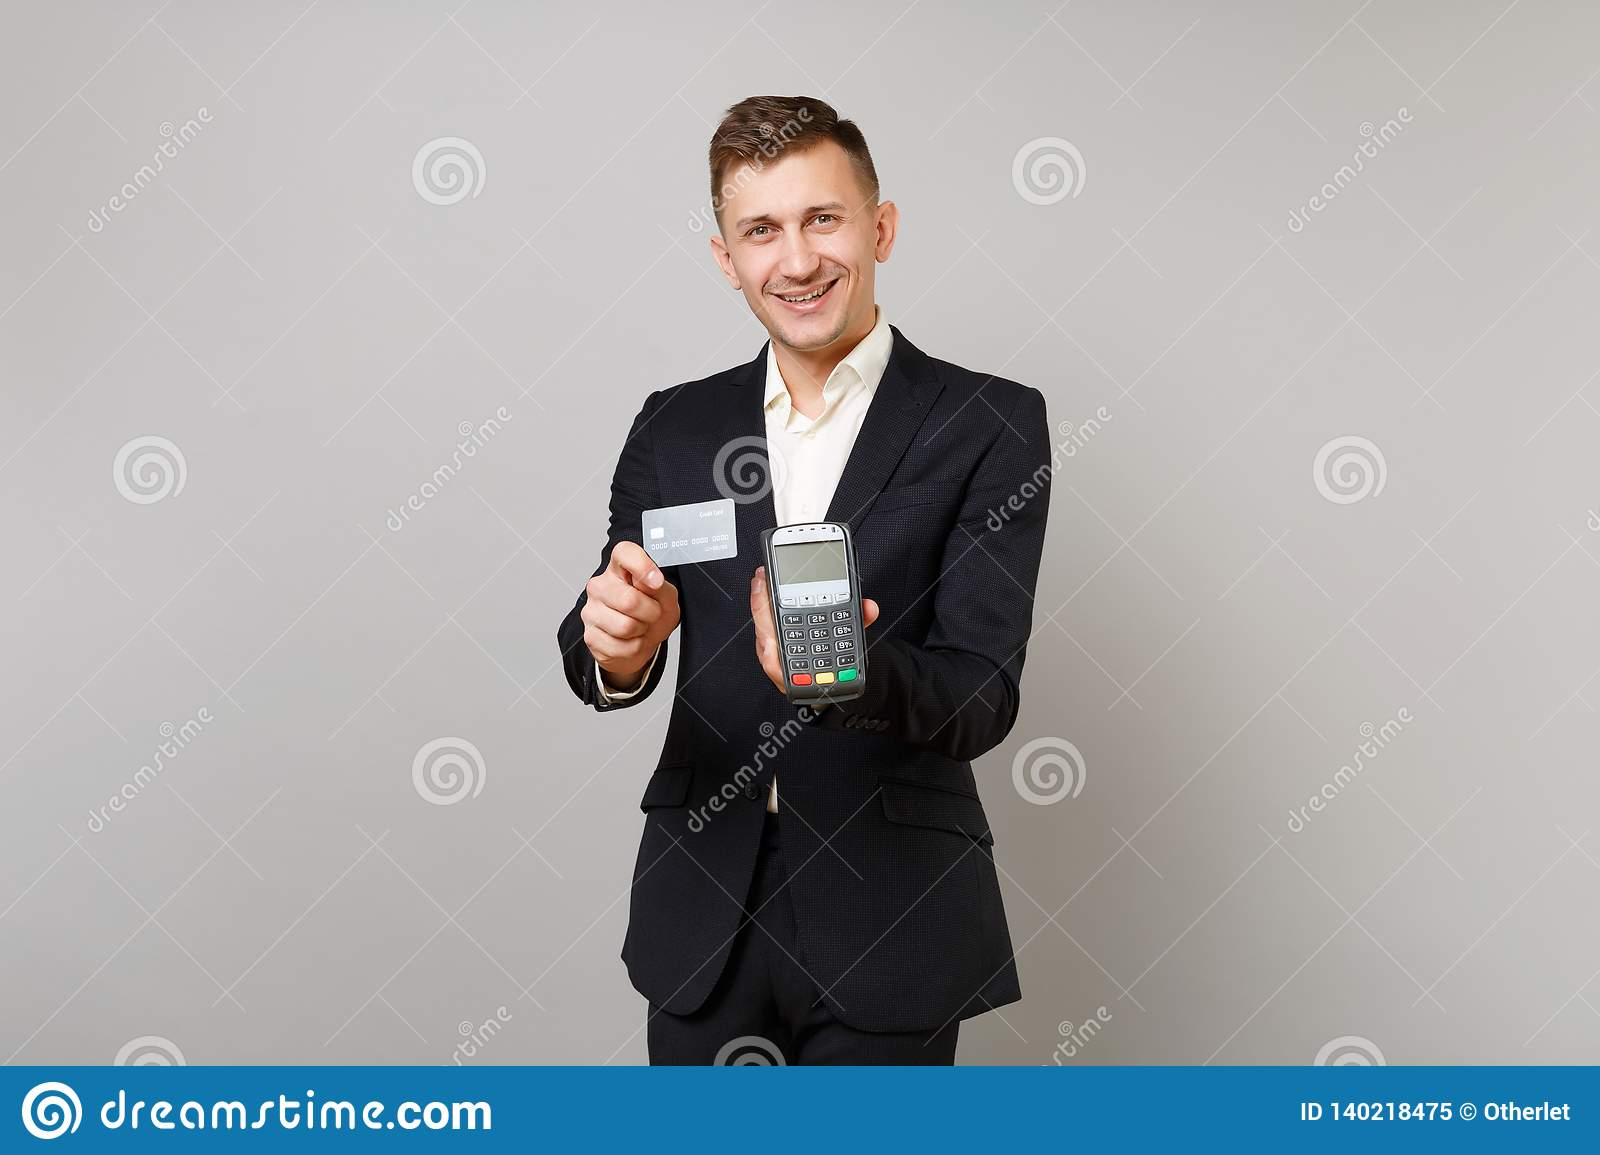 Handsome business man holding wireless modern bank payment terminal to process and acquire credit card payments black